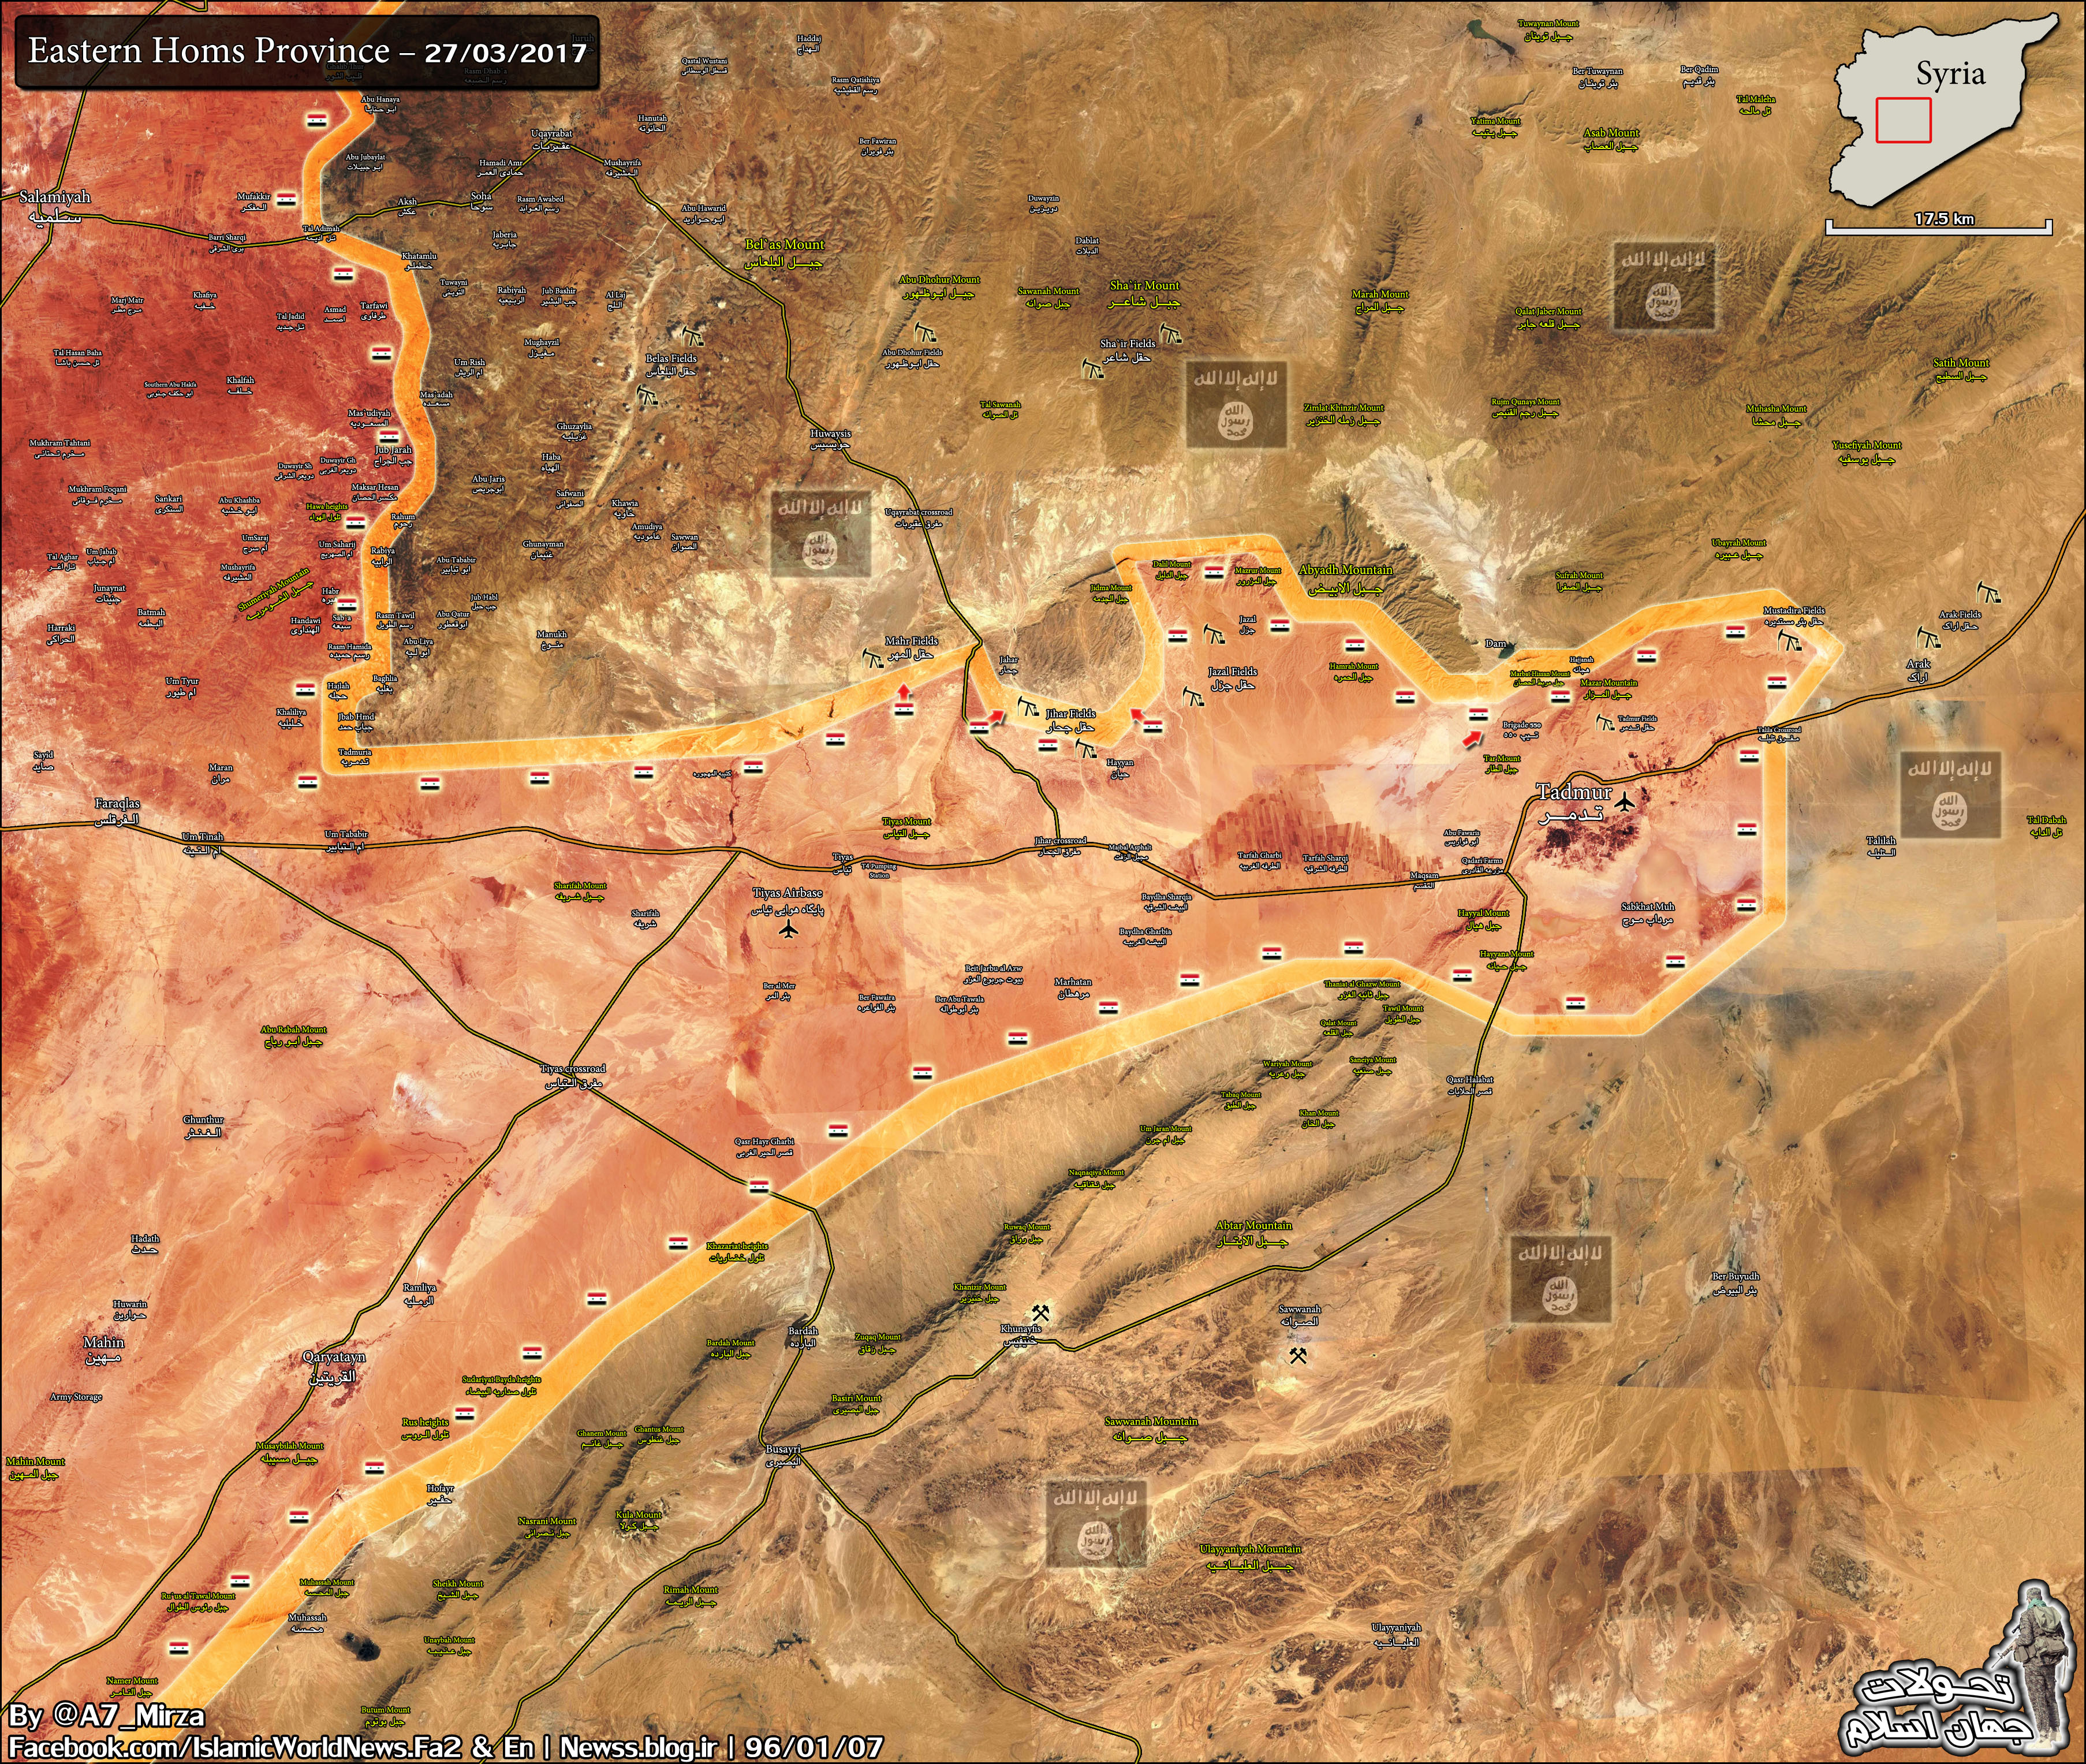 Syrian Army Troops Expanding Buffer Zone North Of Homs-Palmyra Highway